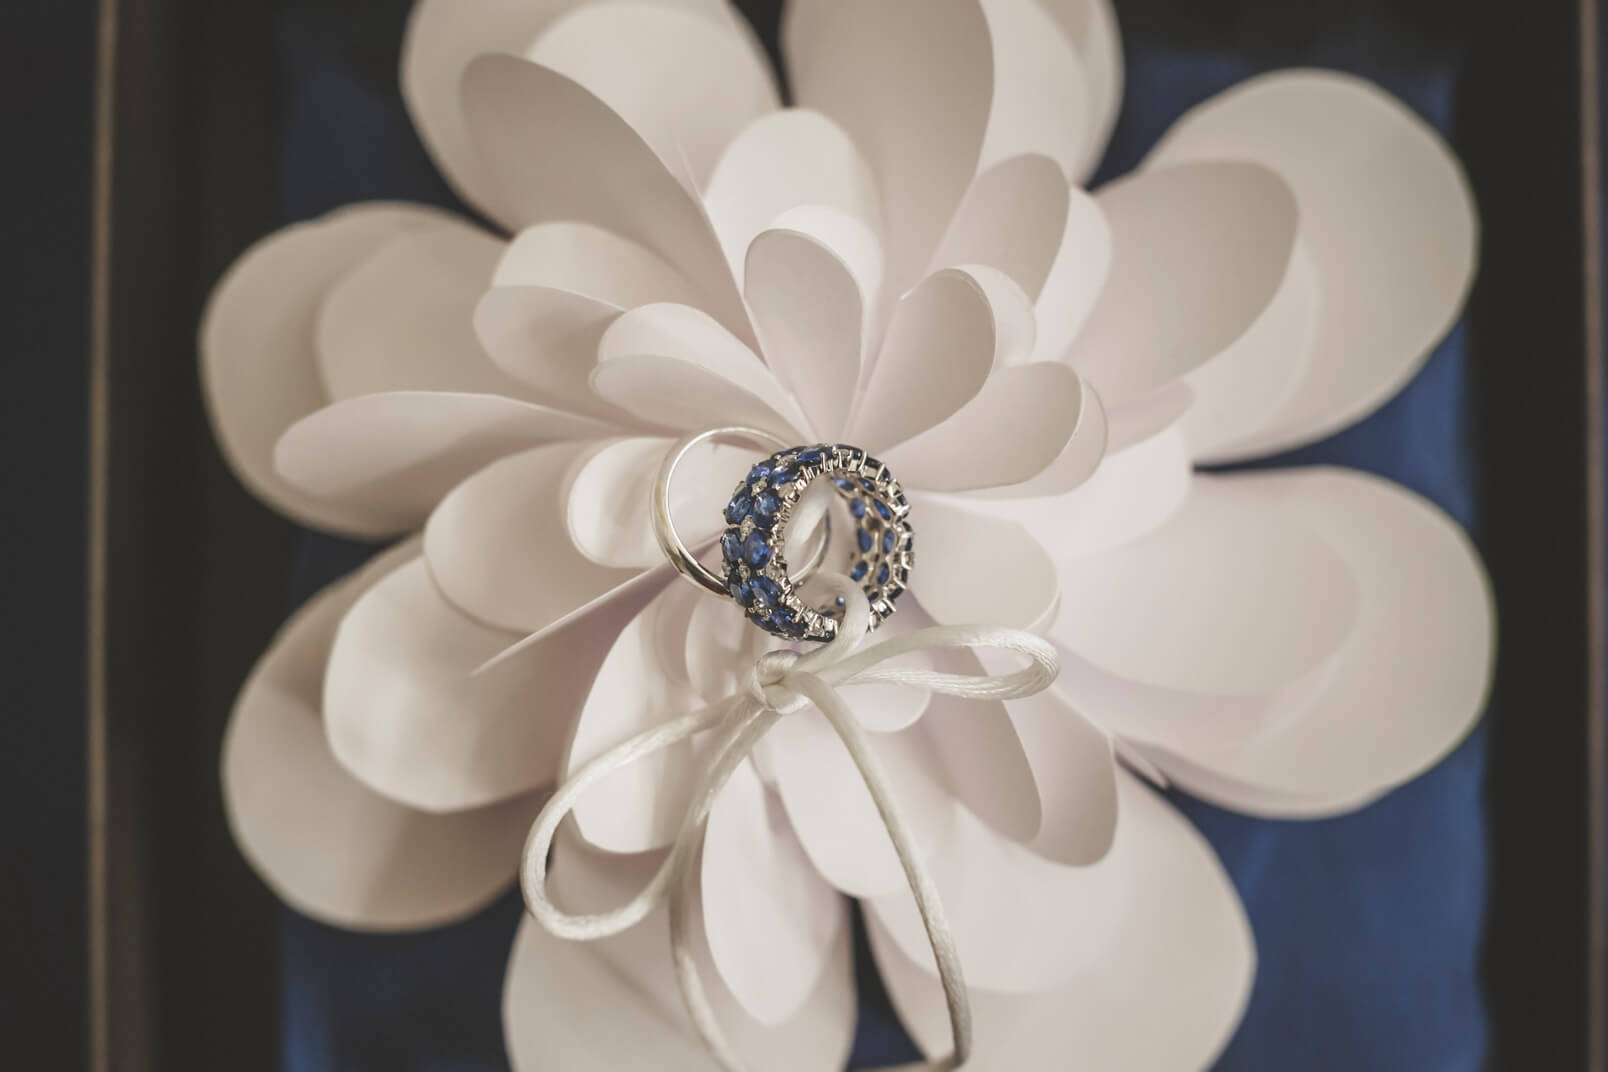 The wedding rings (Sabbadini, Milano): gold, sapphires and diamonds on the paper white flowers by Chicapui.